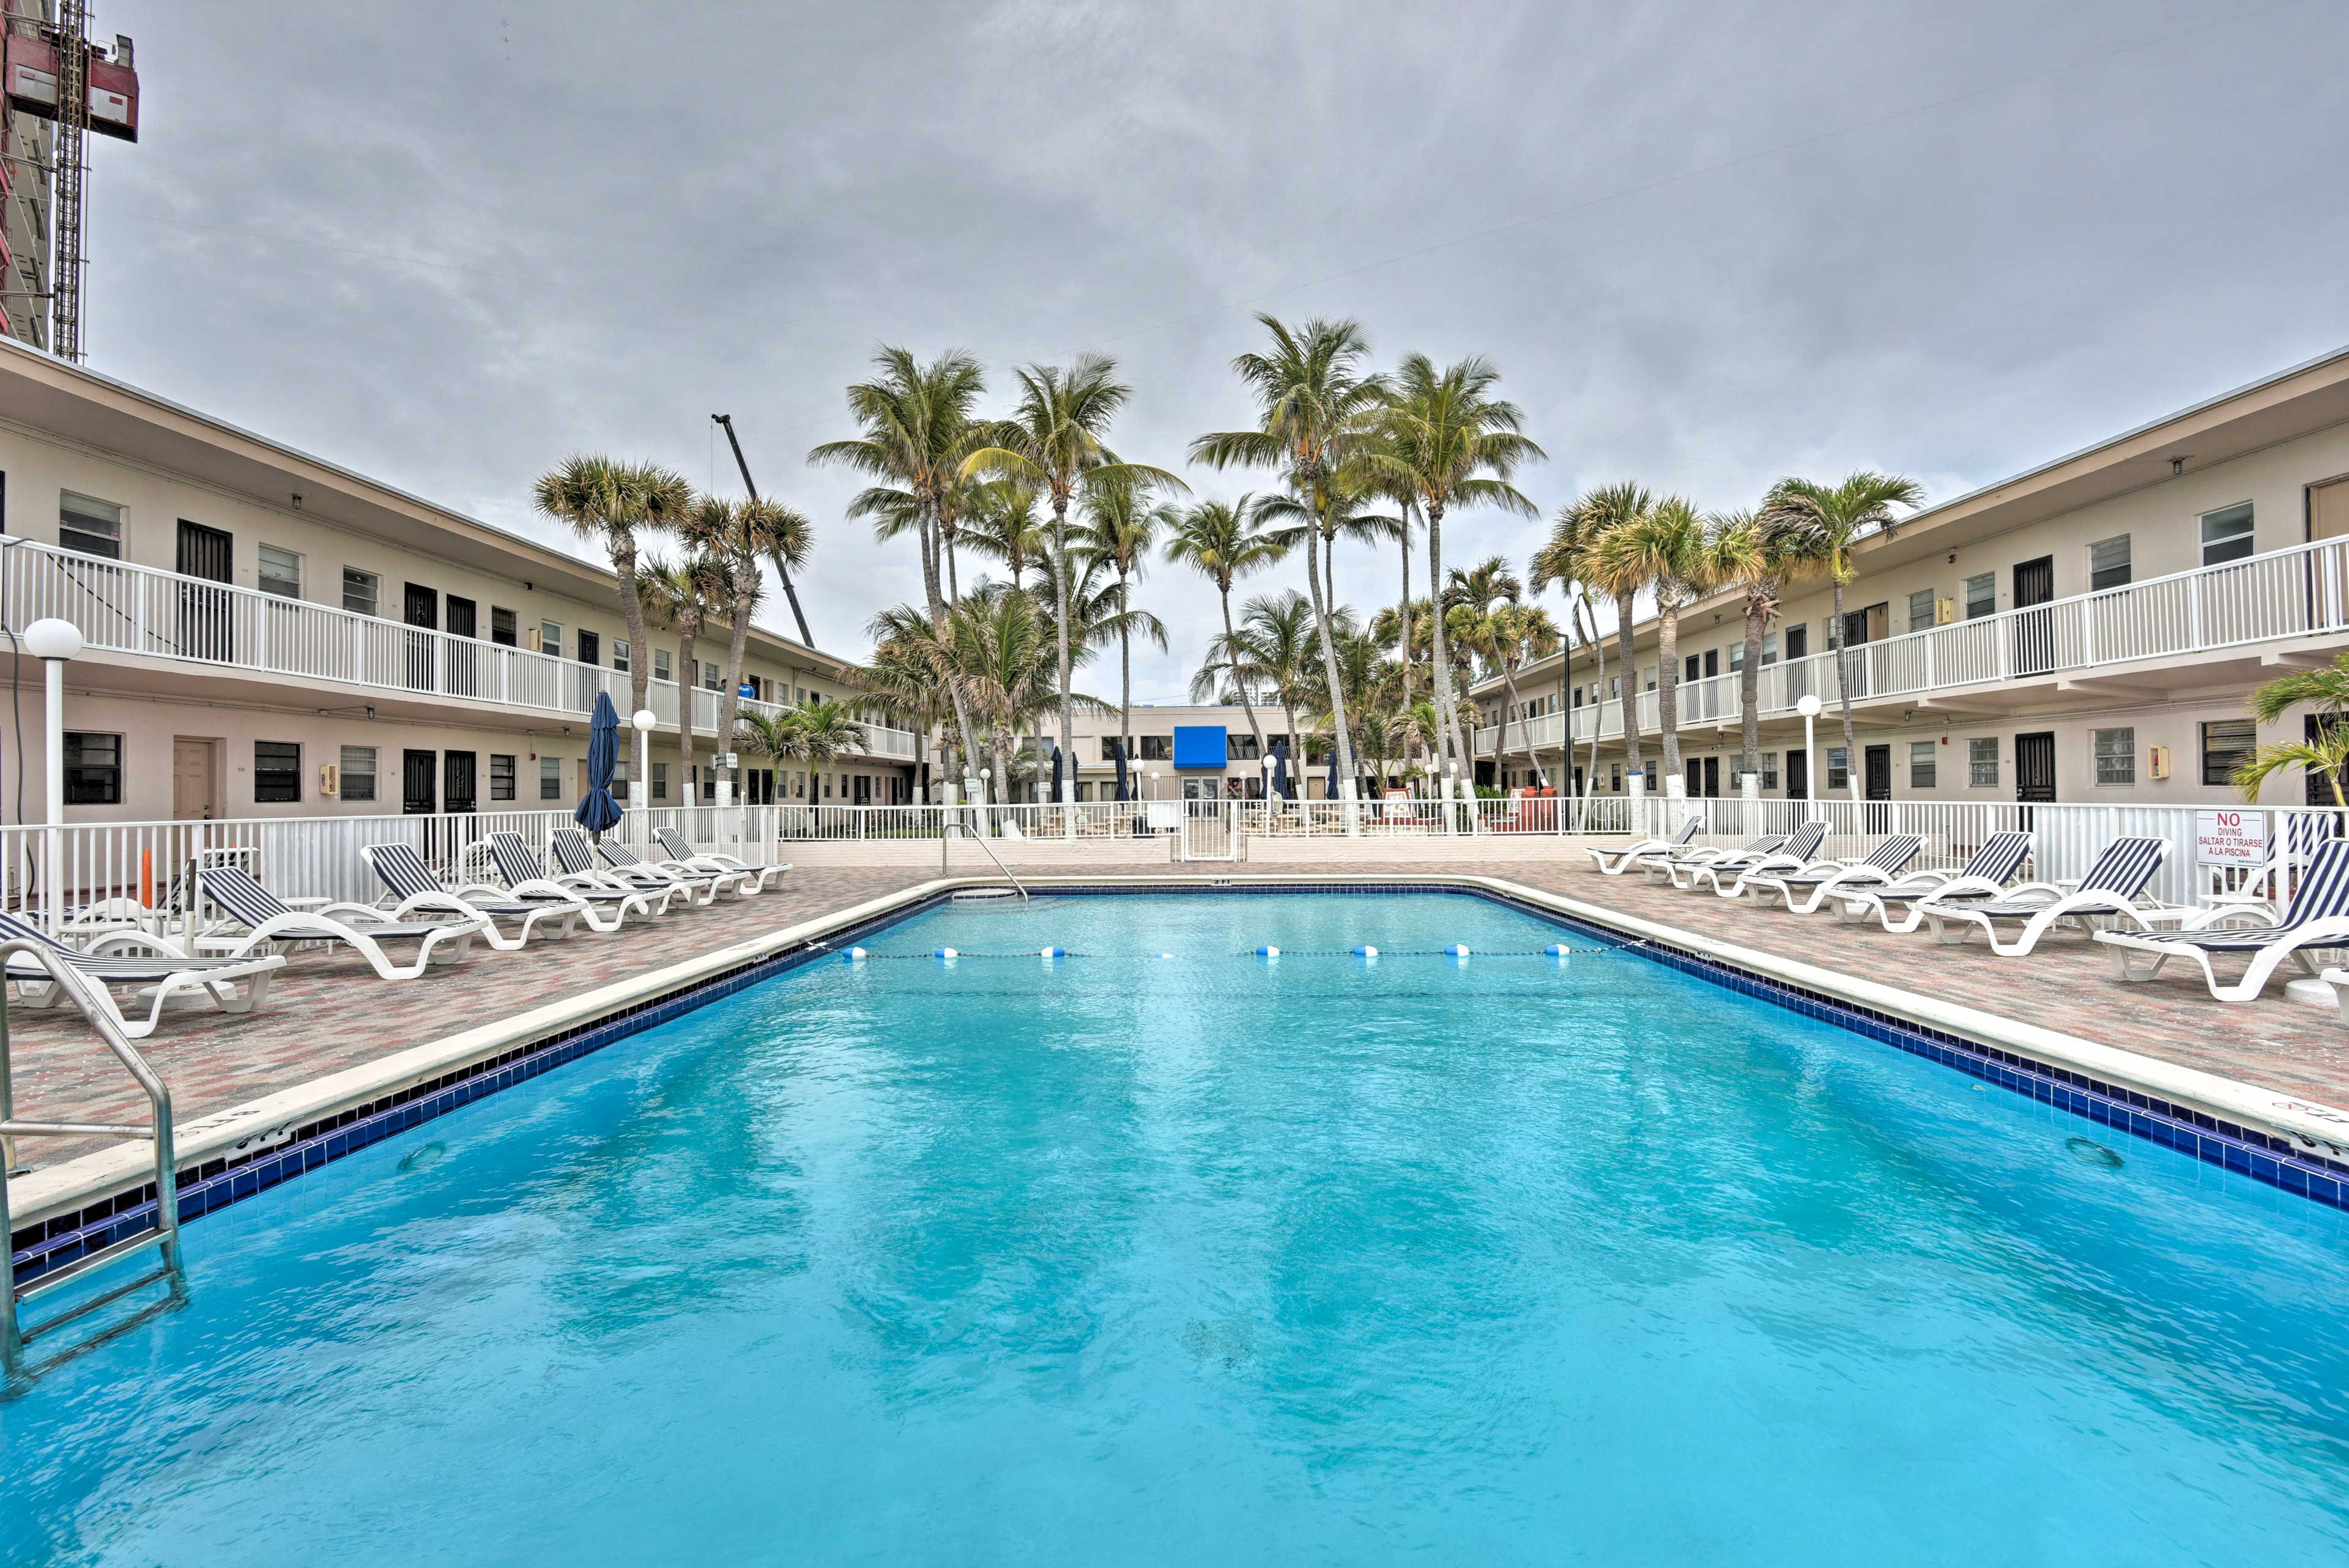 Dive into the community pool at this Miami Beach Club studio vacation rental!